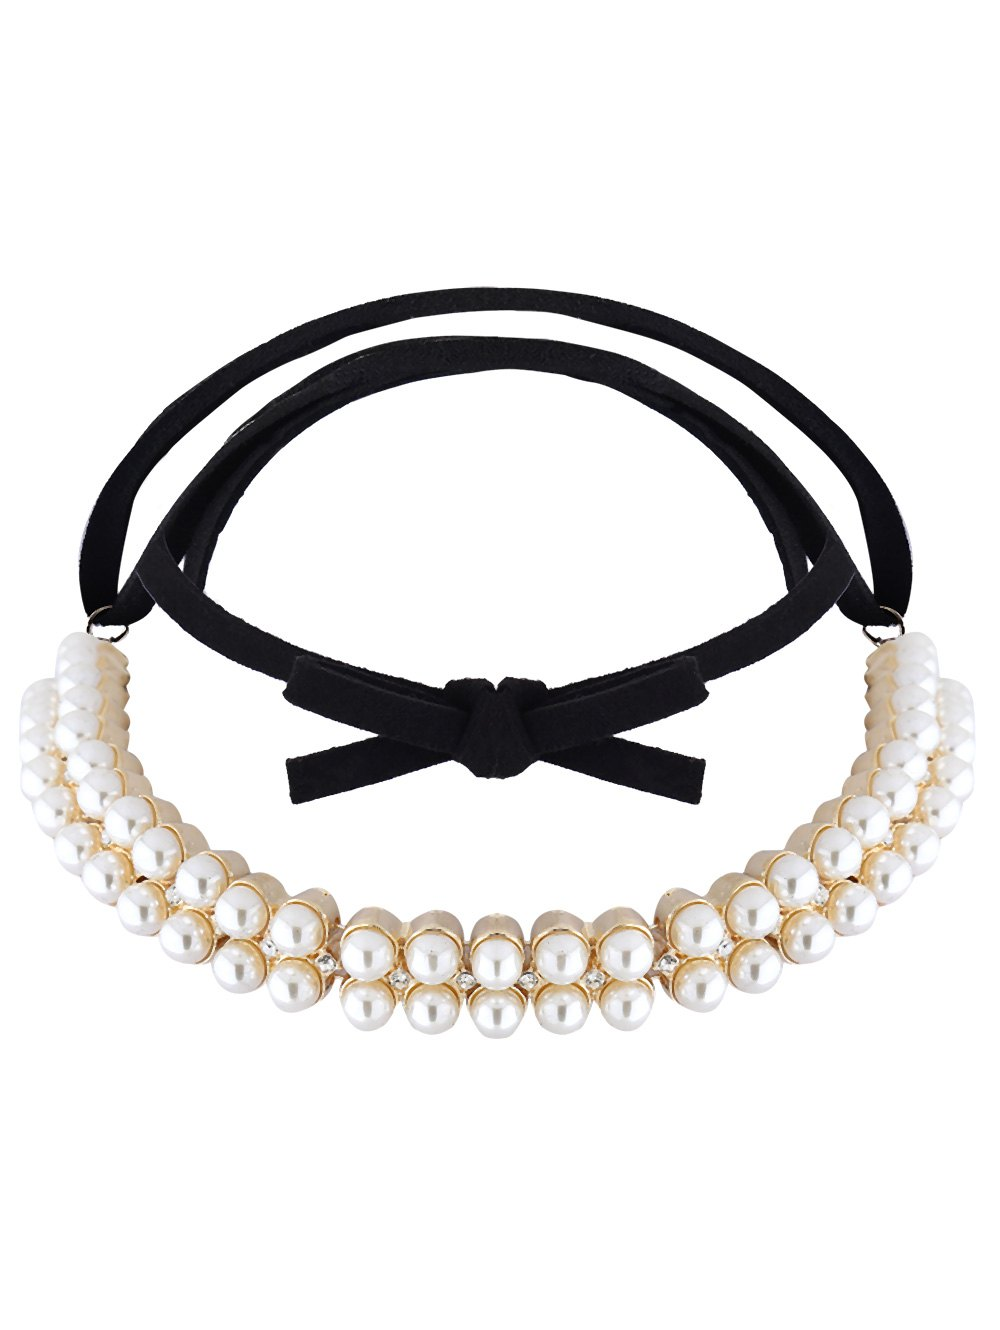 Artificial Pearl Rhinestone Velvet Choker Necklace